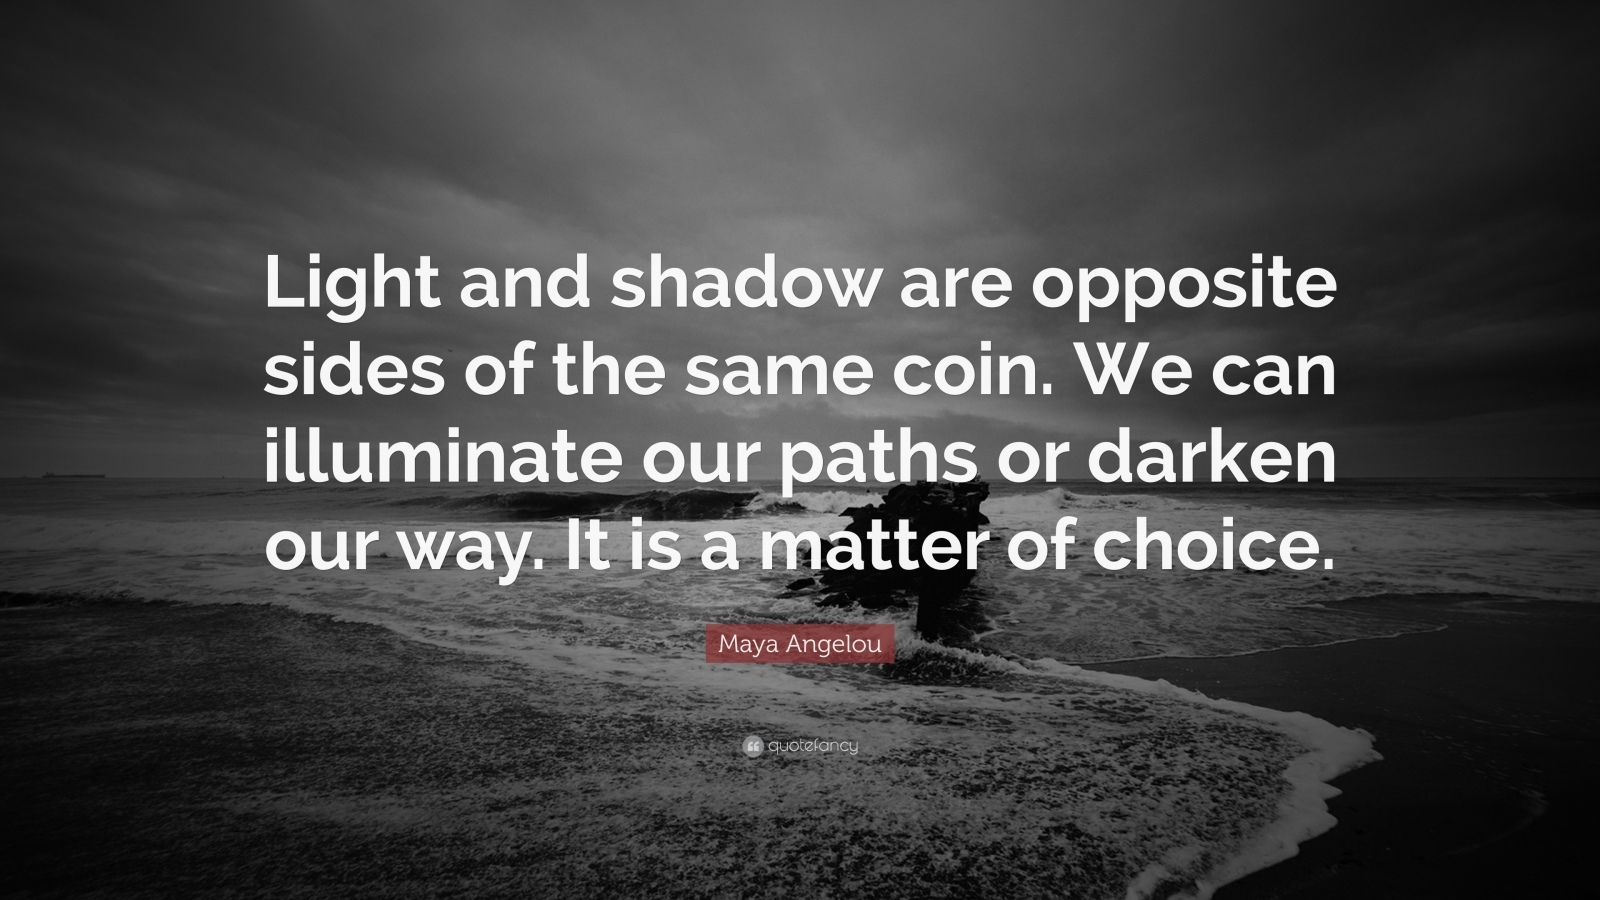 """Maya Angelou Quote: """"Light and shadow are opposite sides of the same coin. We can illuminate our paths or darken our way. It is a matter of choice."""""""